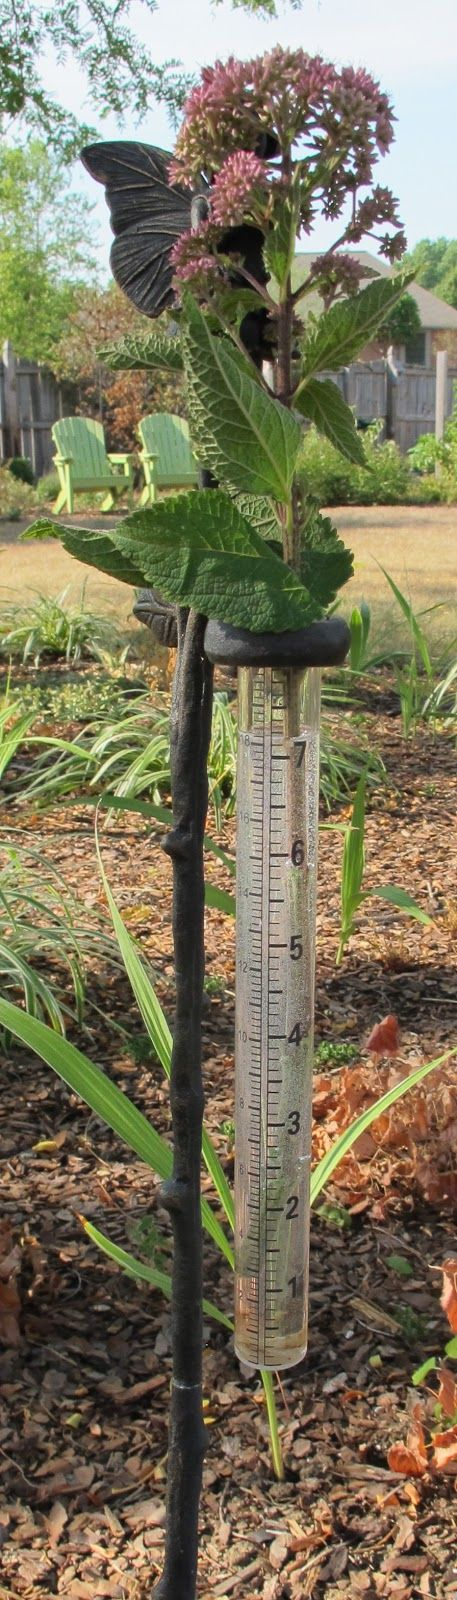 Alternative uses for rain gauges.